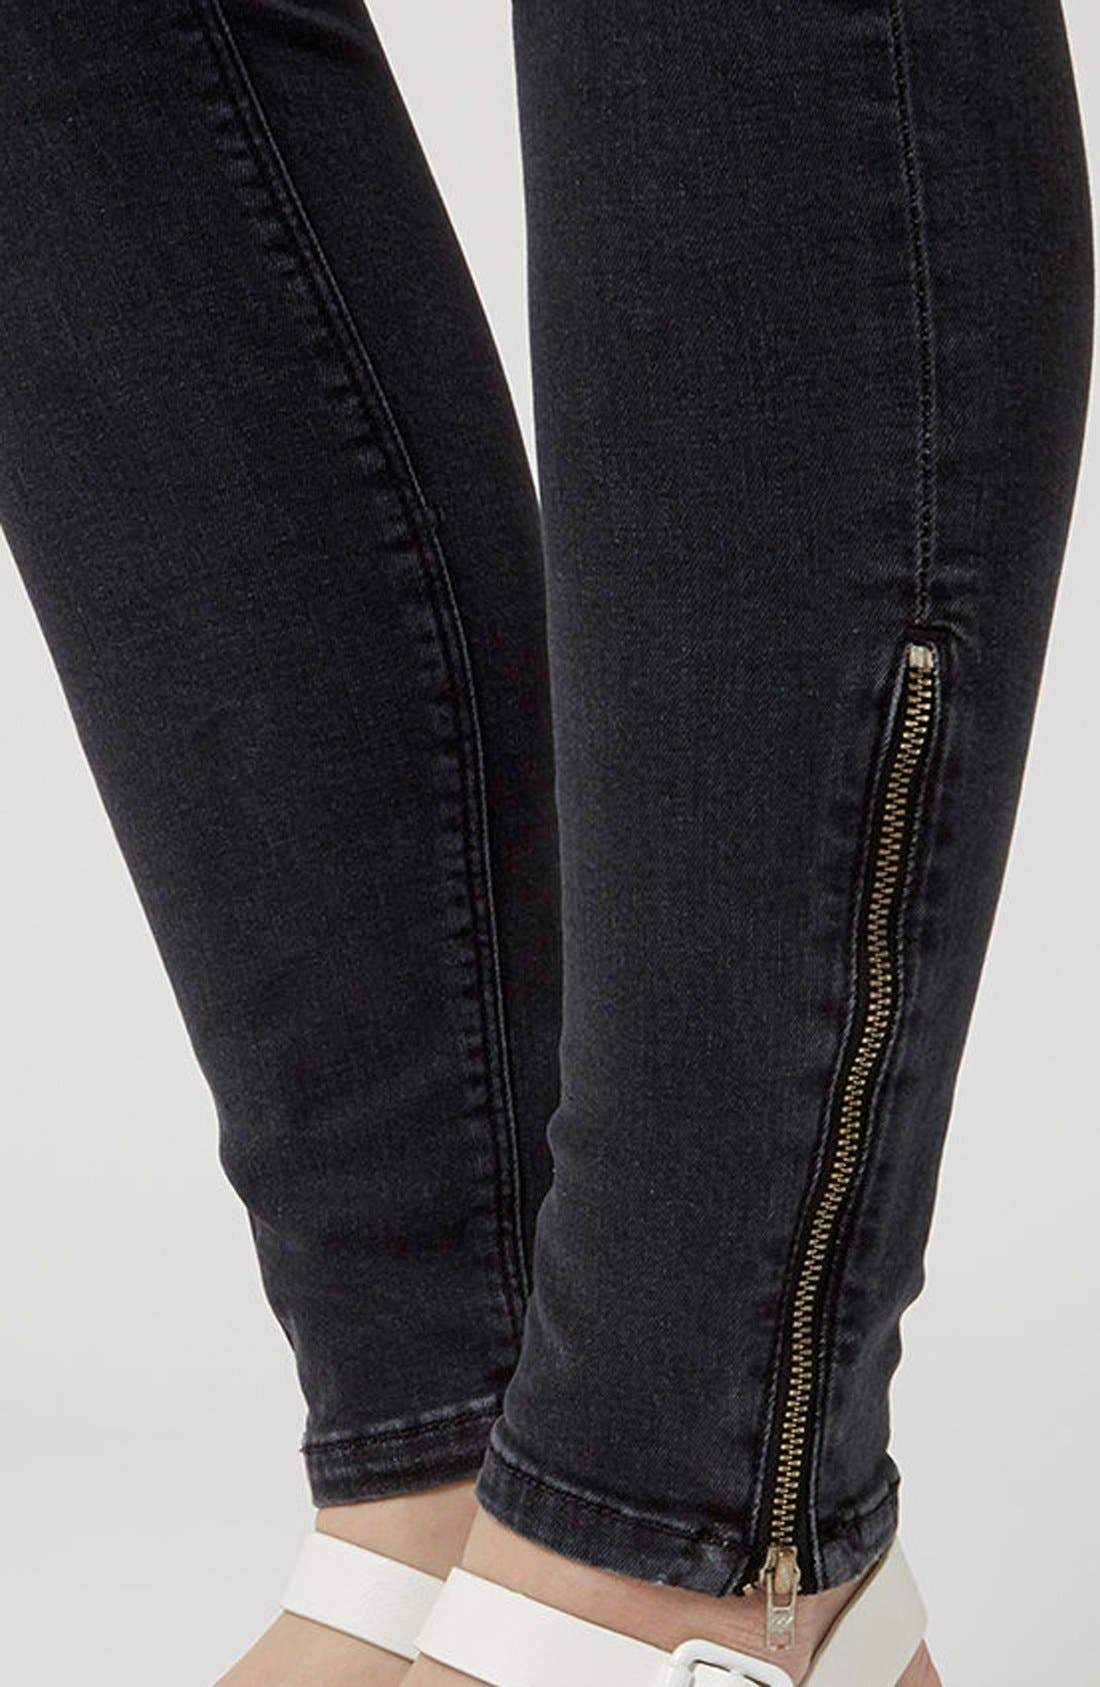 Moto 'Jamie' Zip Ankle Skinny Jeans,                             Alternate thumbnail 8, color,                             001